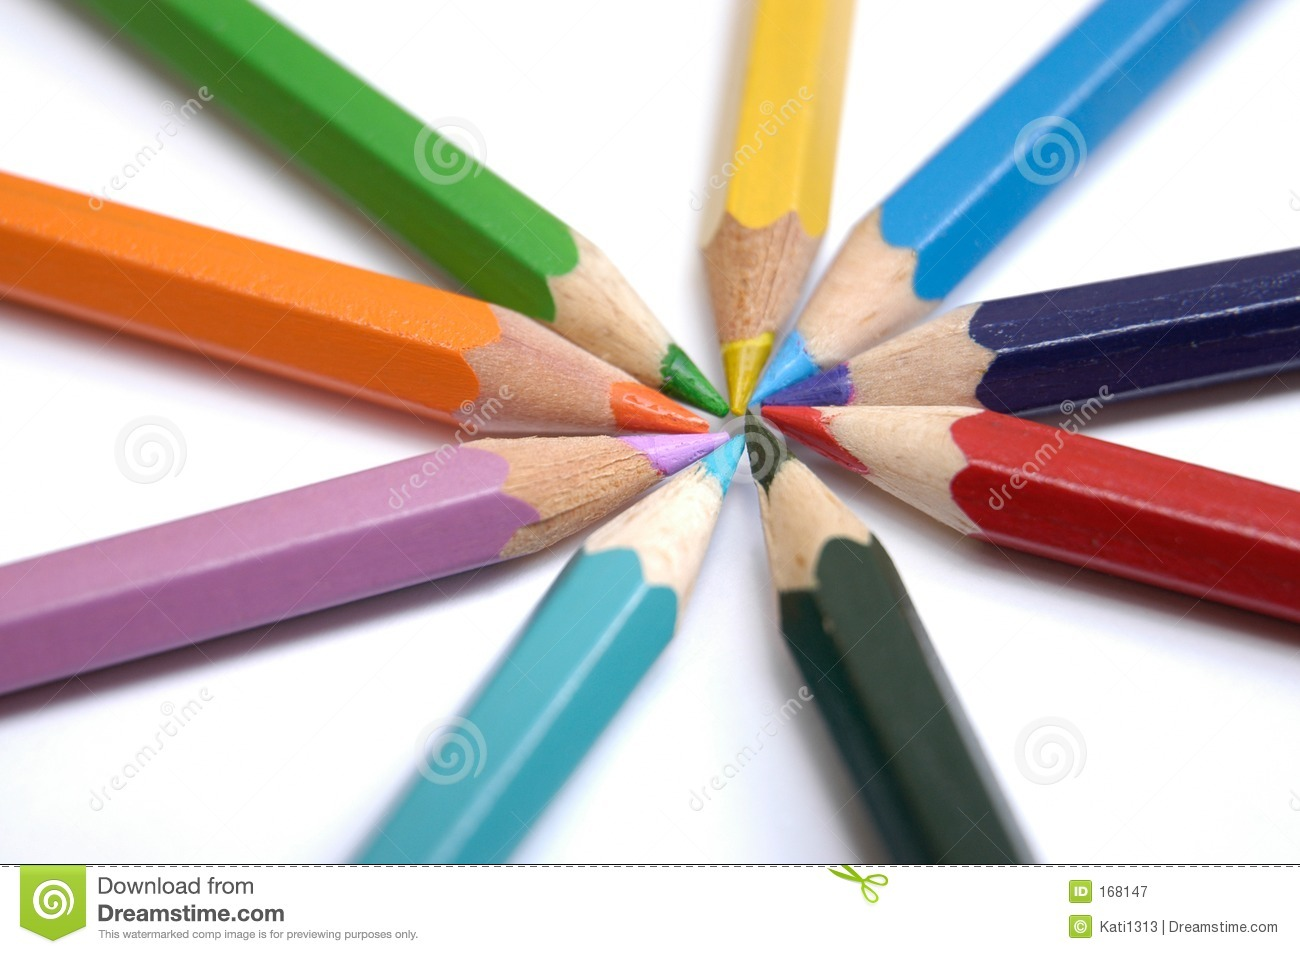 Colorful crayons VI